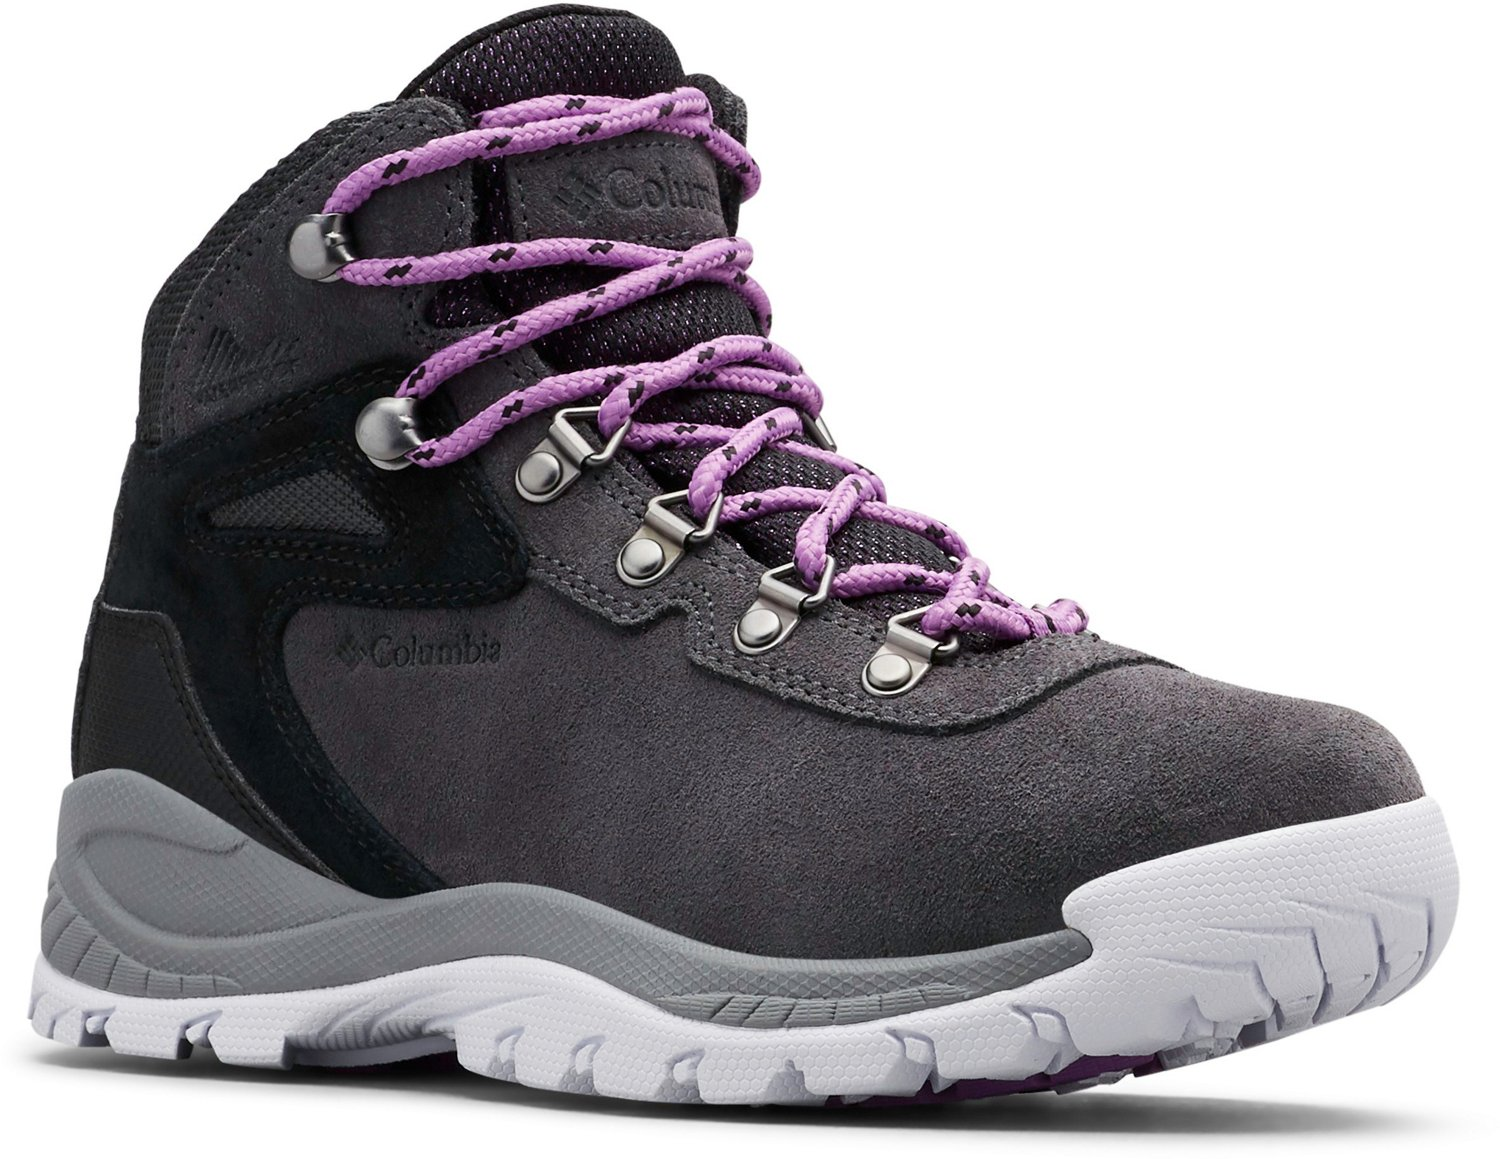 a2e3539c73557 Display product reviews for Columbia Sportswear Women's Newton Ridge Plus  Waterproof Amped Hiking Boots